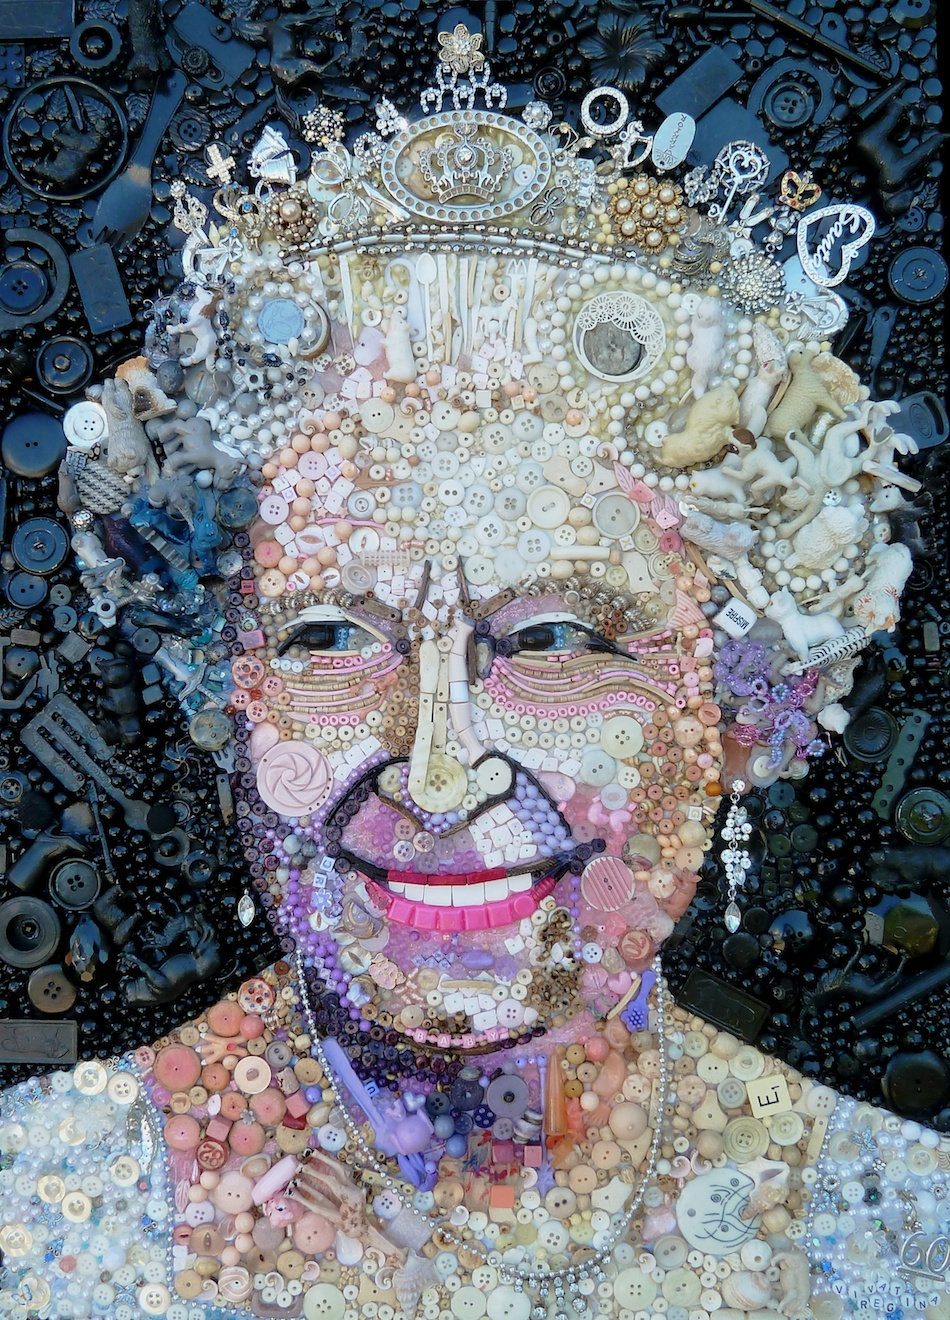 recycled art by jane perkins ignant de